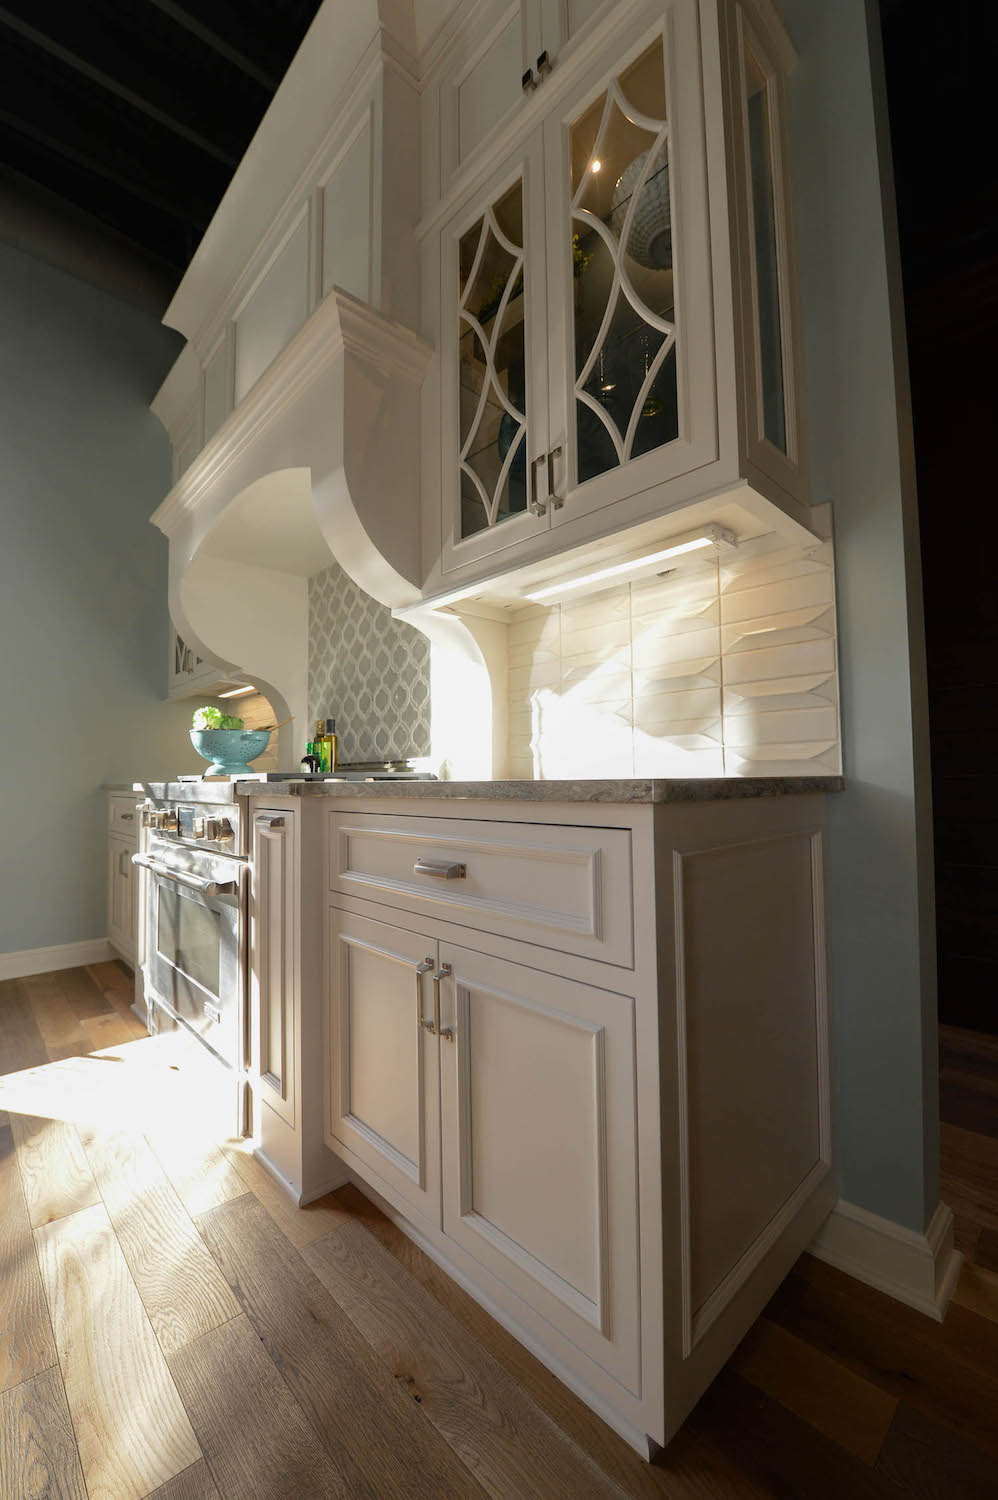 White Cabinet Counter Space